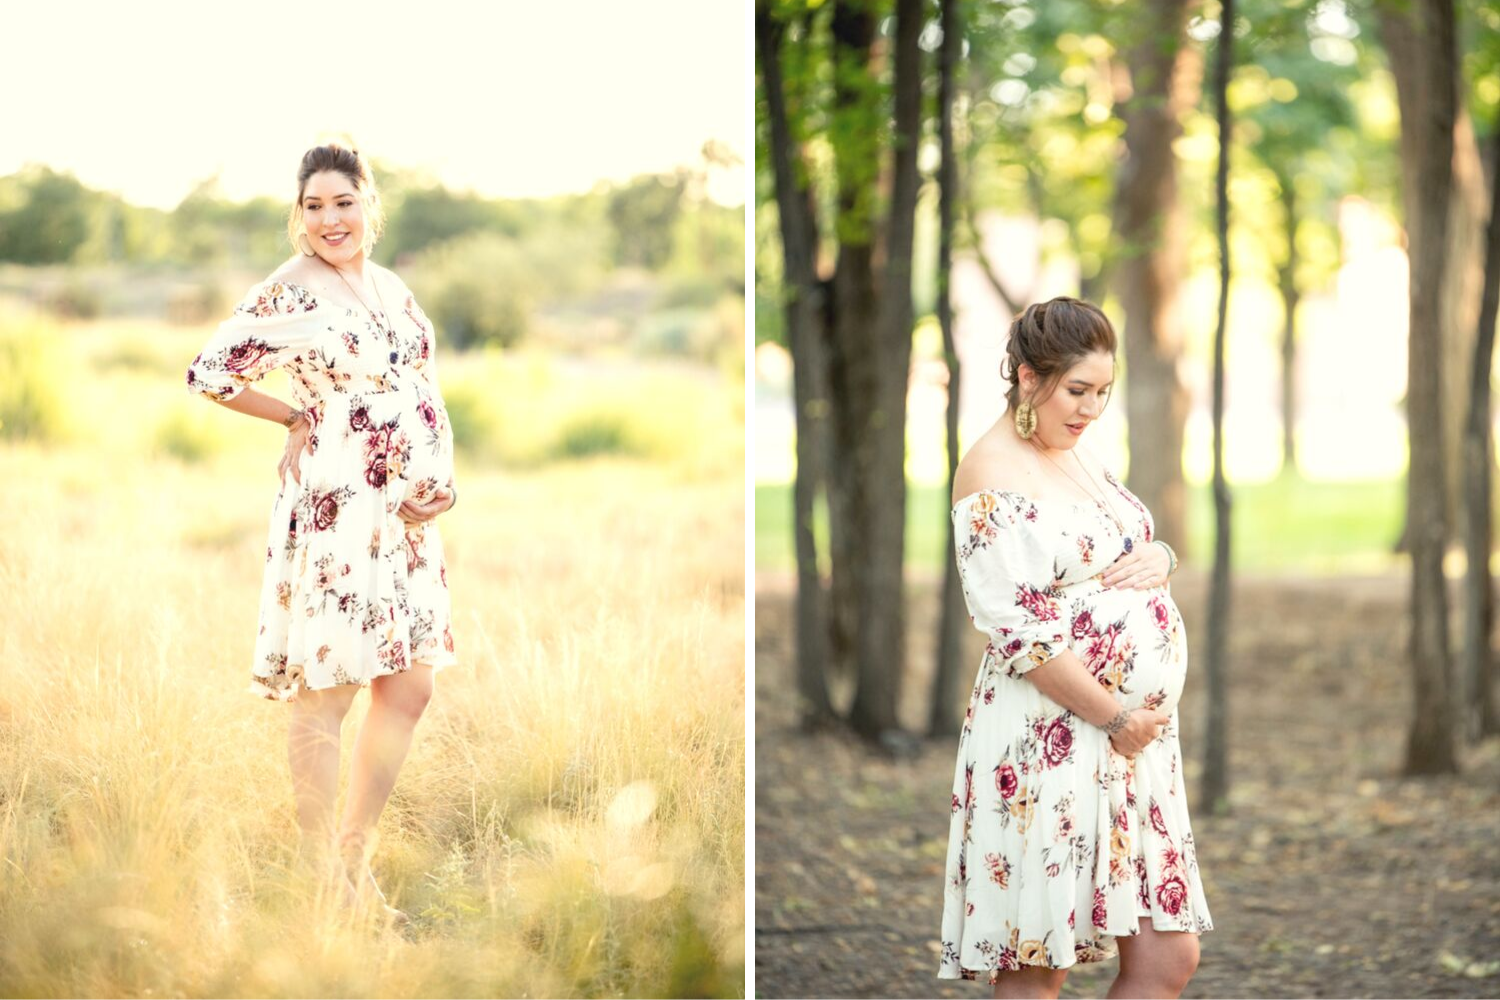 Maternity Photography in New Mexico